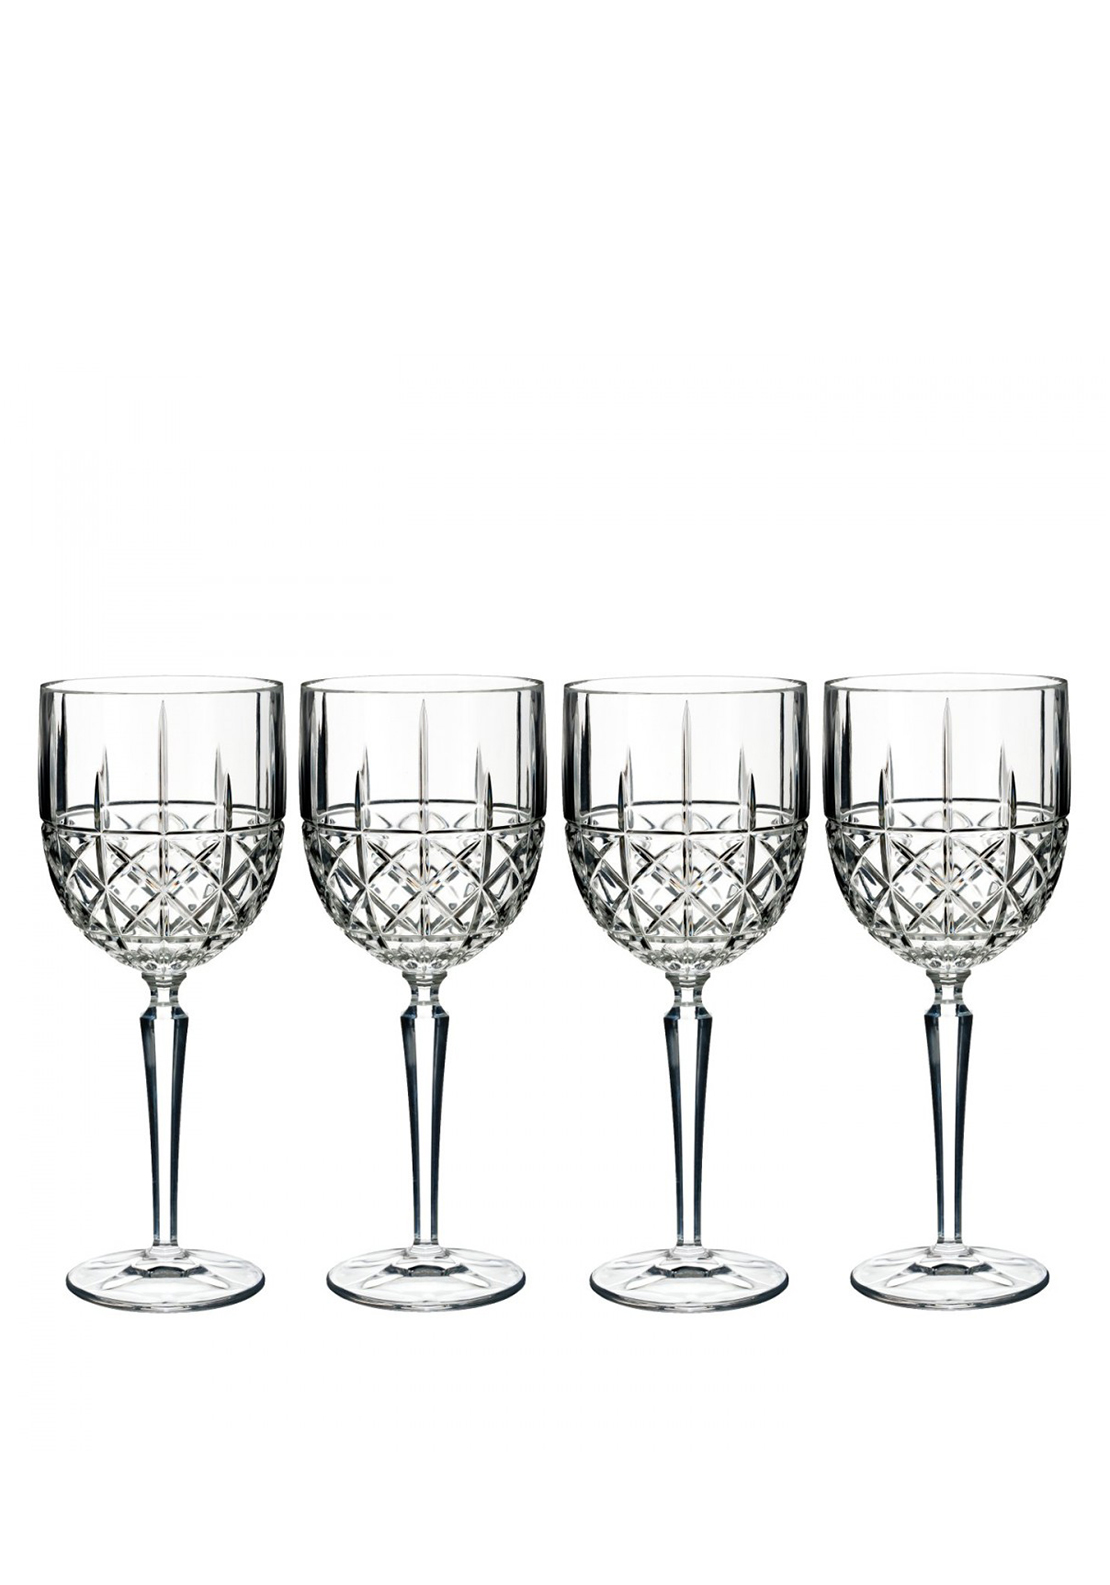 Marquis by Waterford Crystal Brady Goblet Wine Glass, Set of 4